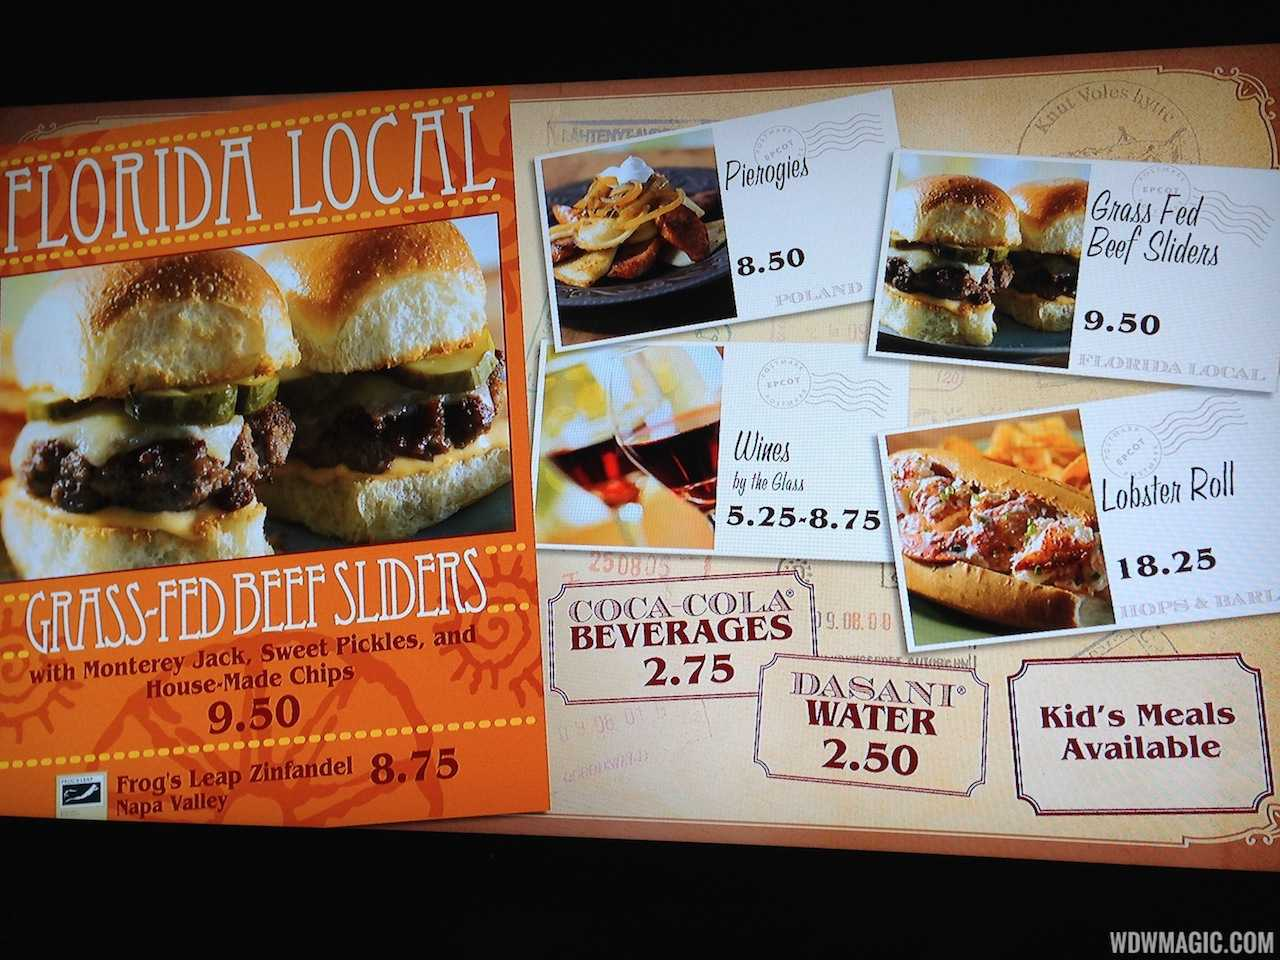 World Showcase of Flavors food truck menu